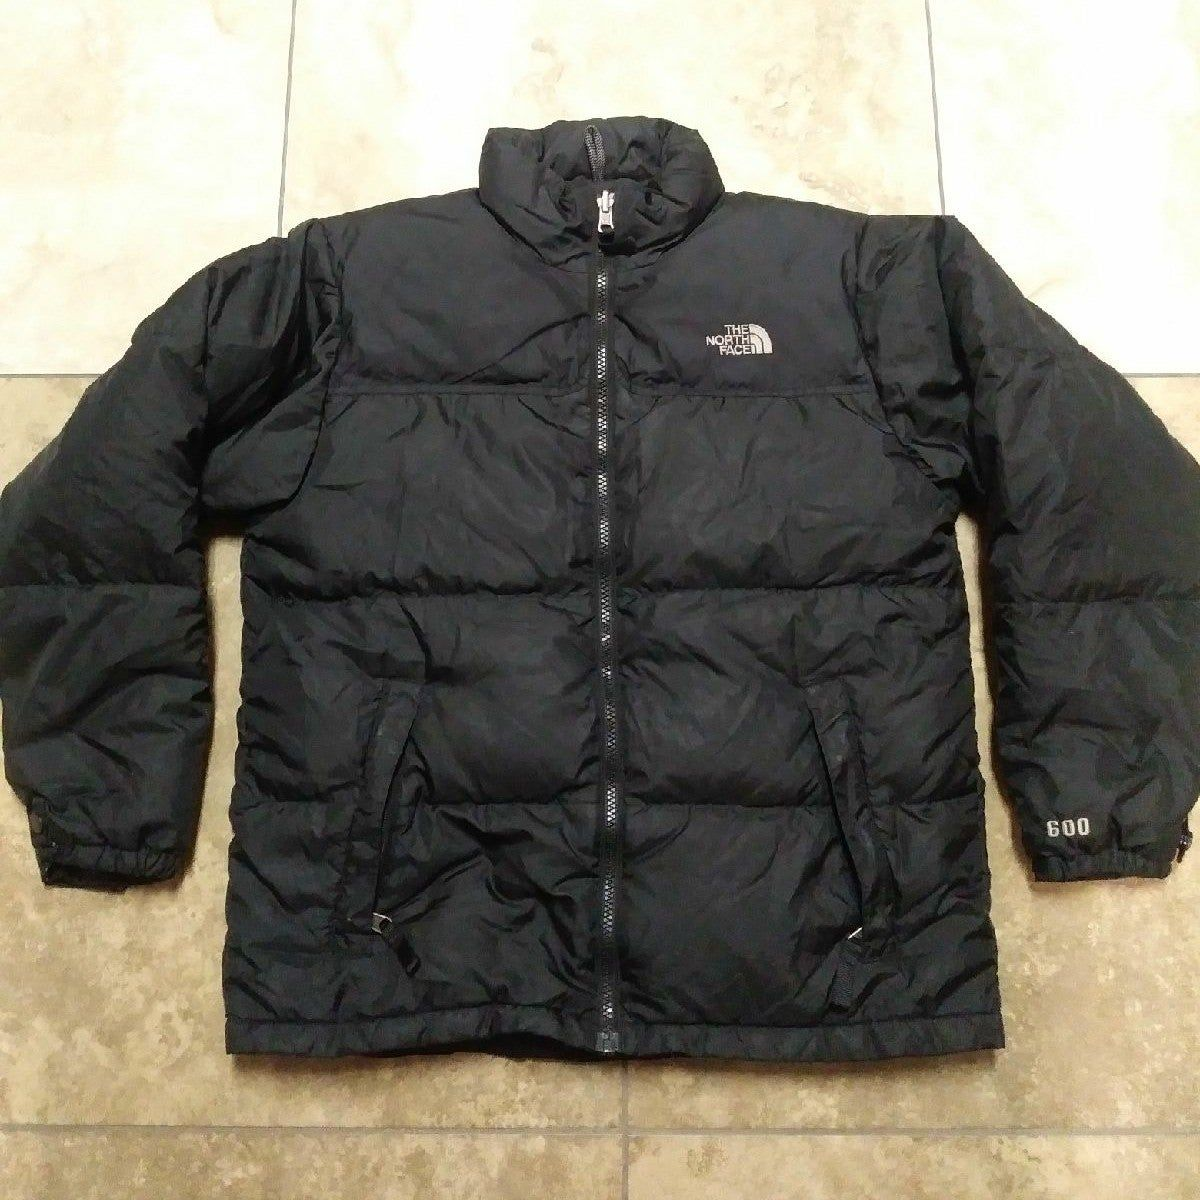 This Is A Black The North Face Puffer Down 600 Jacket It Is A Boys Size Large Just Needs A Wash The North Face Puffer North Face Puffer Jackets [ 1200 x 1200 Pixel ]